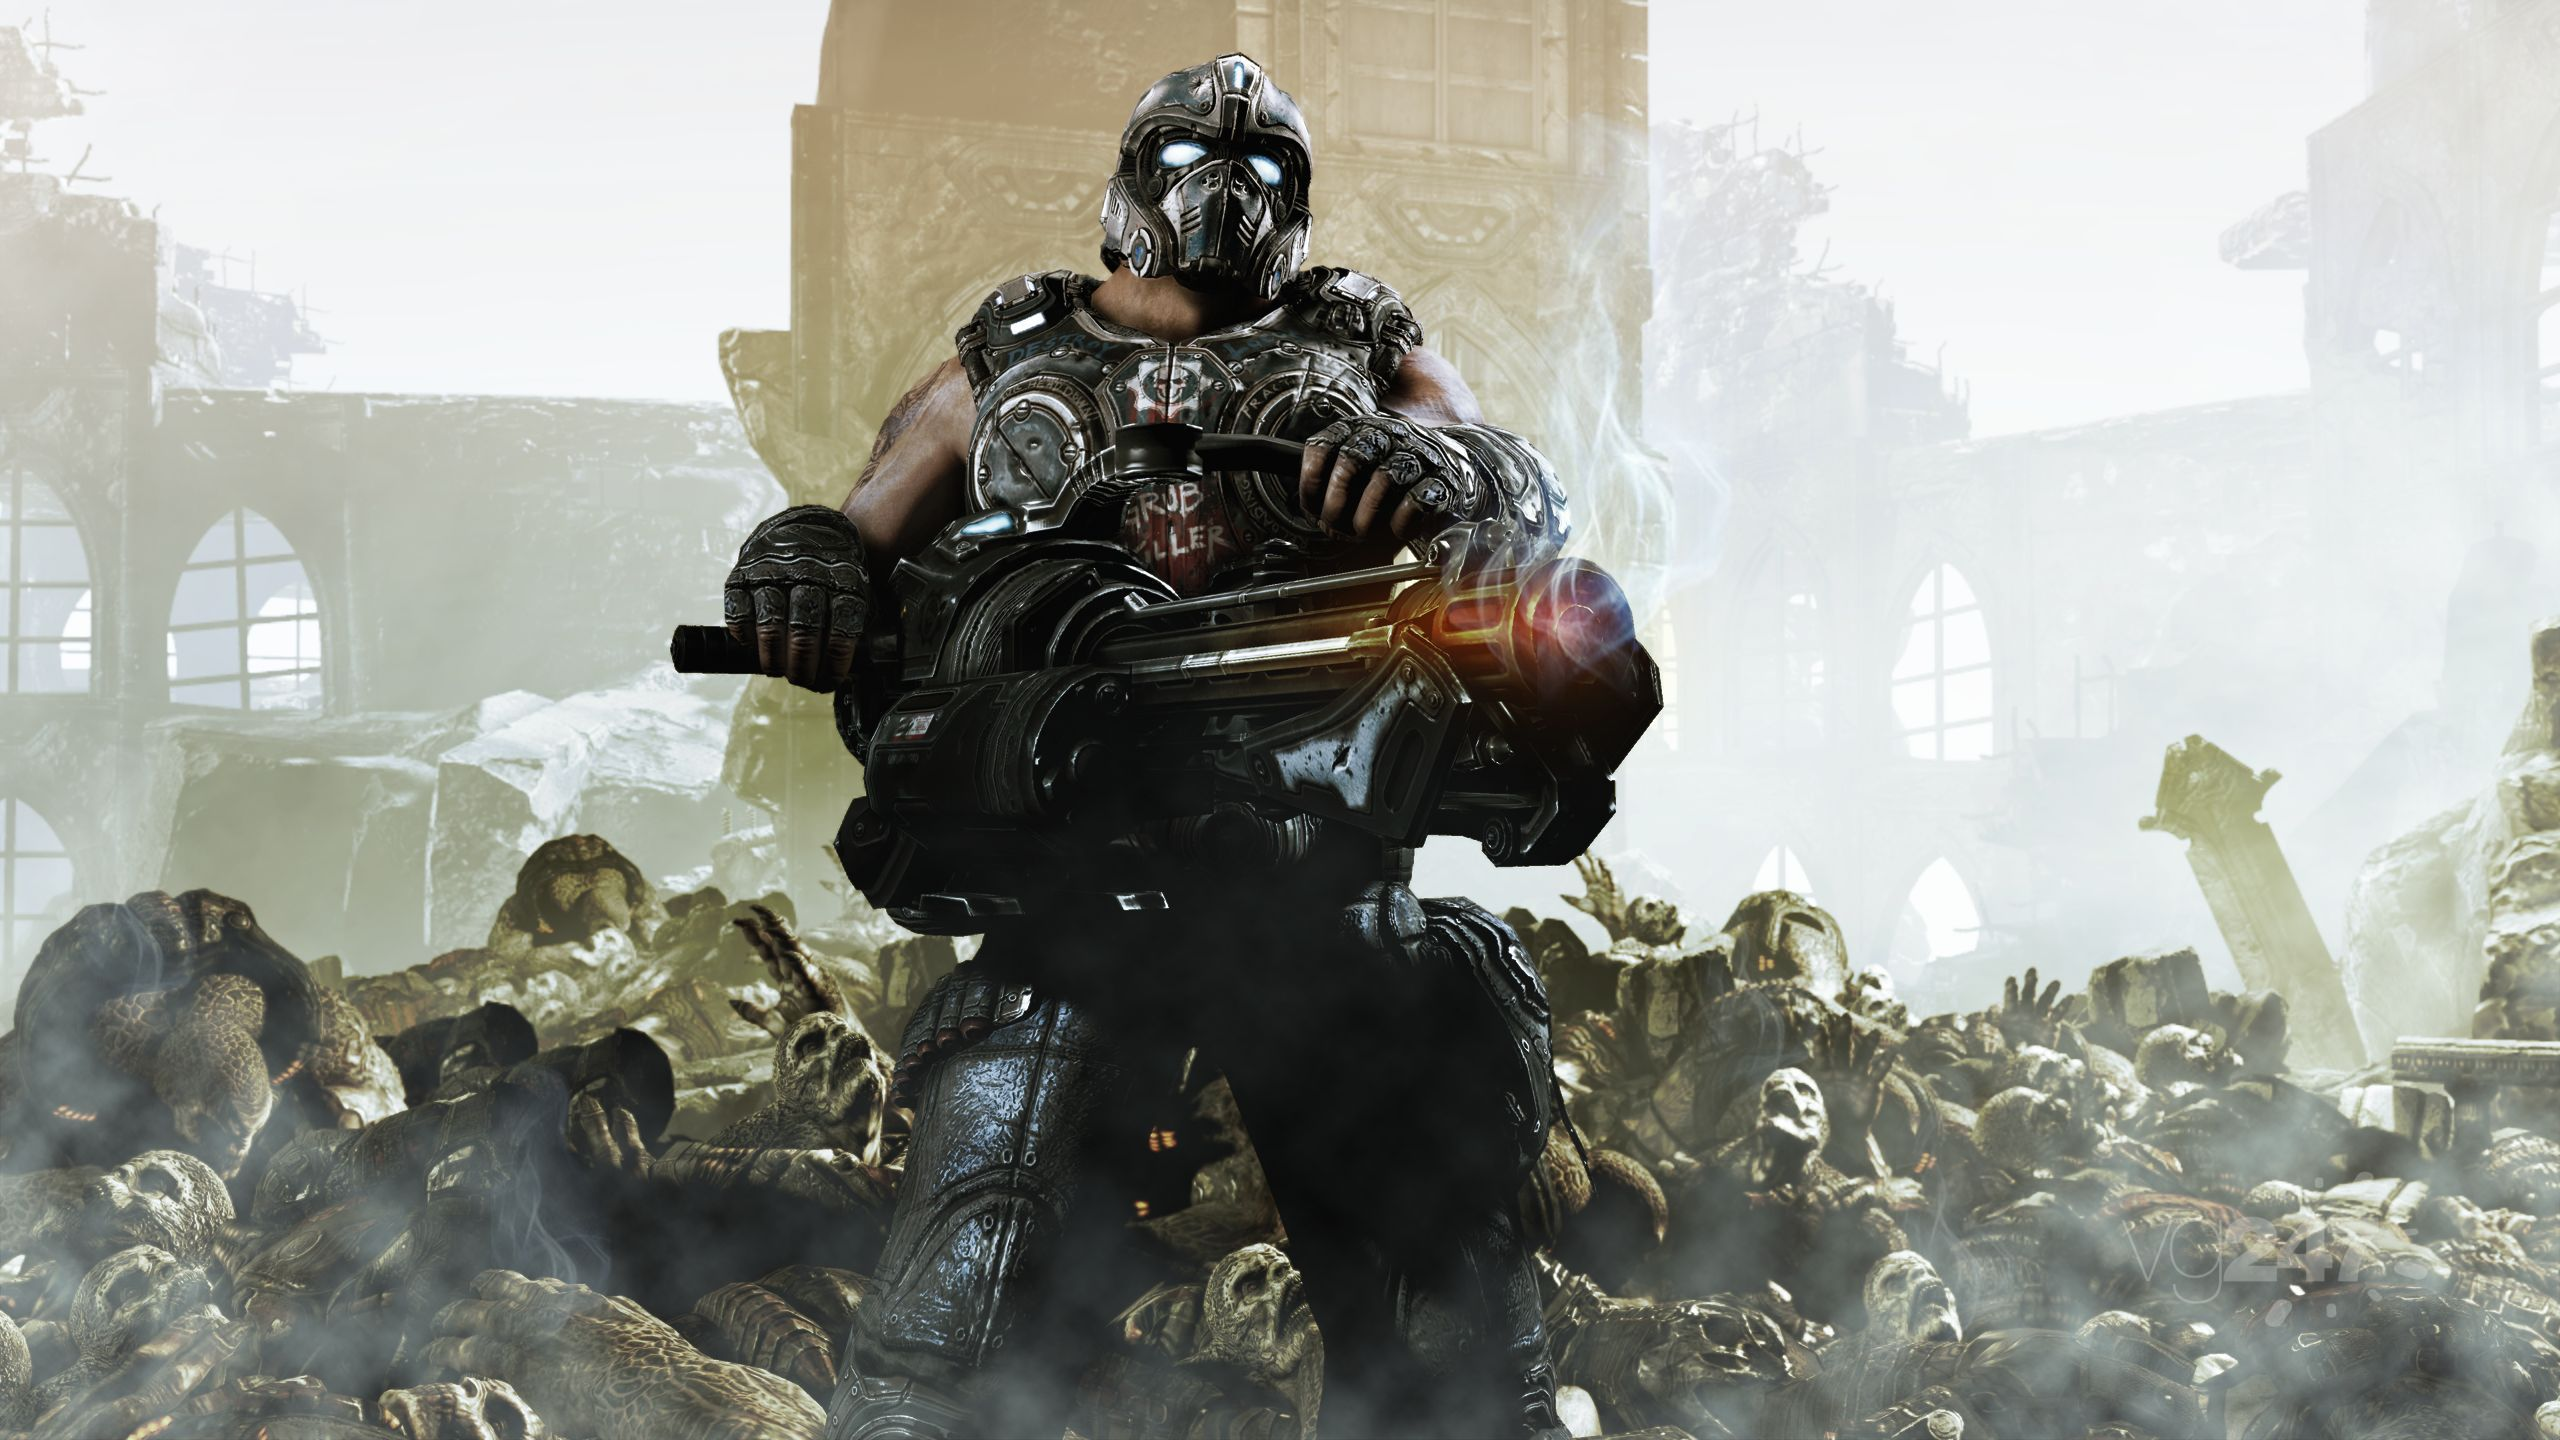 Gears Of War 3 Hd Wallpapers For Android: Save Clayton Carmine! Clayton For Chairman!